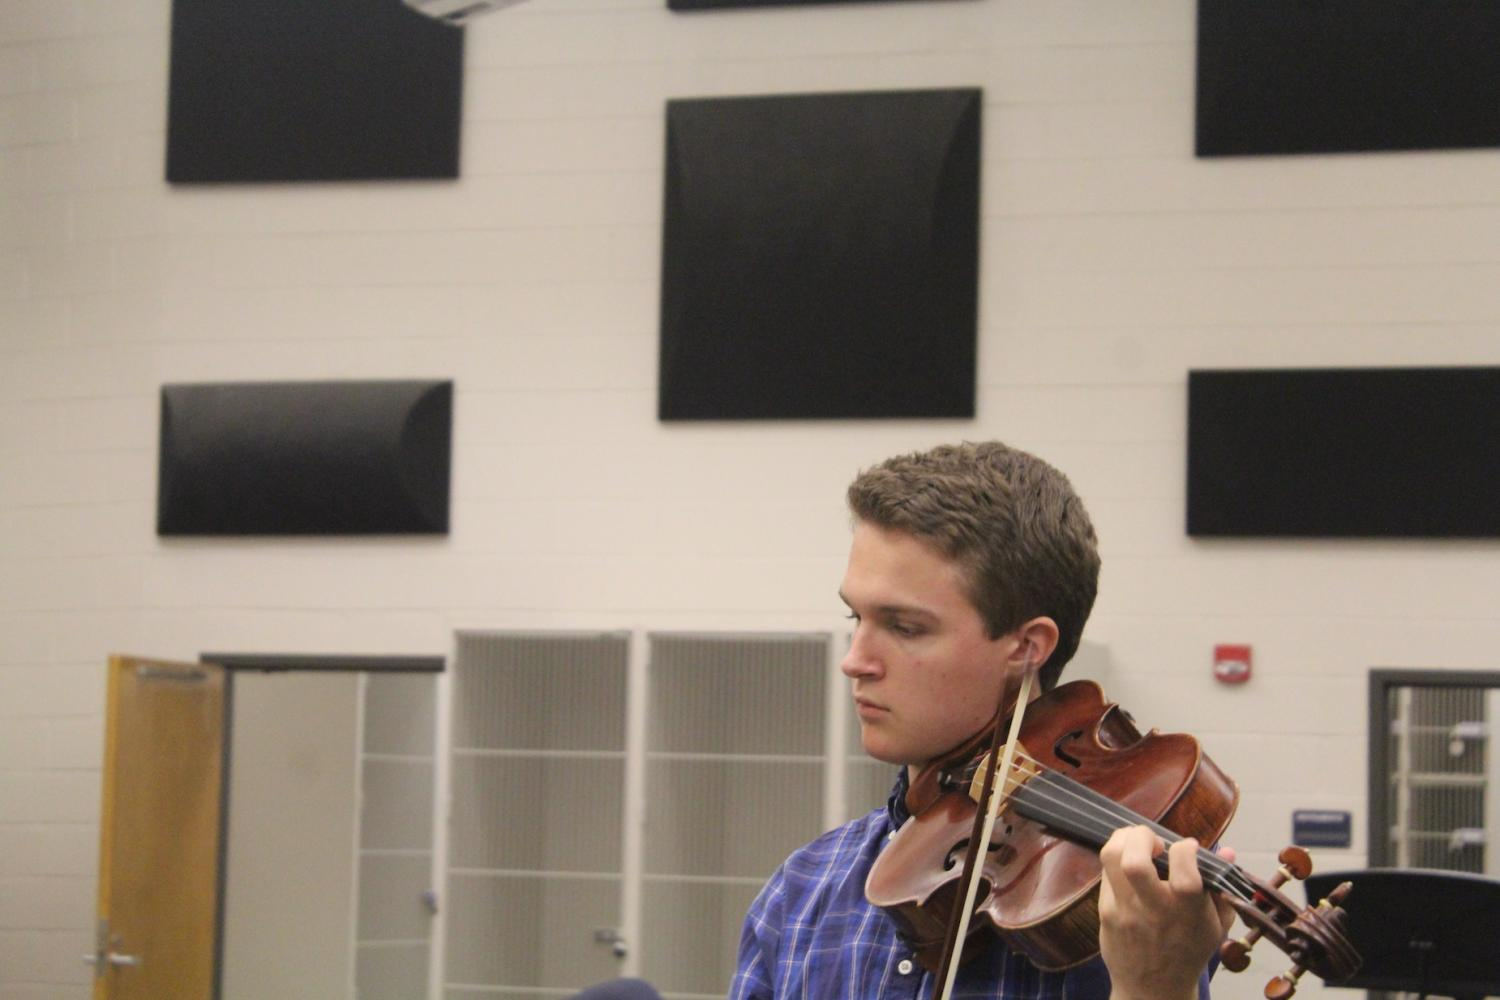 Jordan+Watt%2C+a+senior+at+NC%2C+continues+to+practice+for+his+upcoming+audition+for+the+Emory+Symphony+Orchestra.+Jordan+was+in+the+symphony+last+year%2C+an+outstanding+achievement+as+a+junior.+He+is+obviously+passionate+about+his+instrumental+progress+considering+this+will+be+his+second+time+going+to+this+audition.+%E2%80%9CIt+is+always+good+to+come+prepared%2C%E2%80%9D+Watt+says.+